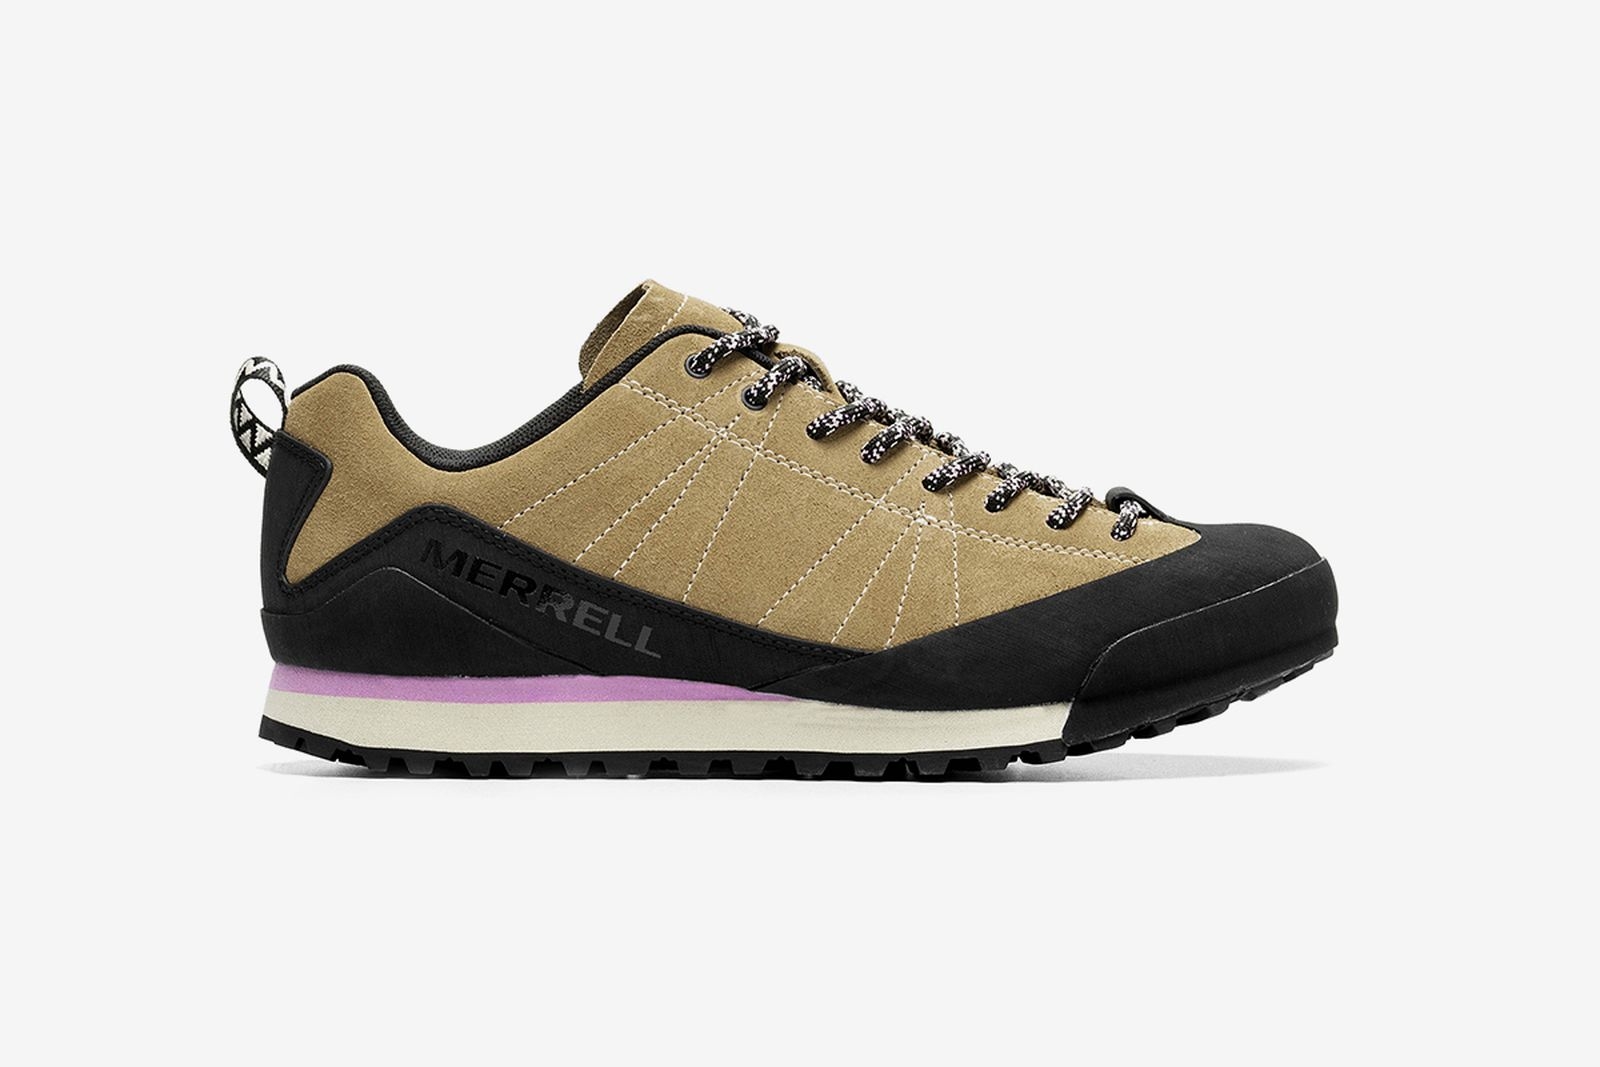 merrell-ss21-1trl-collection-03